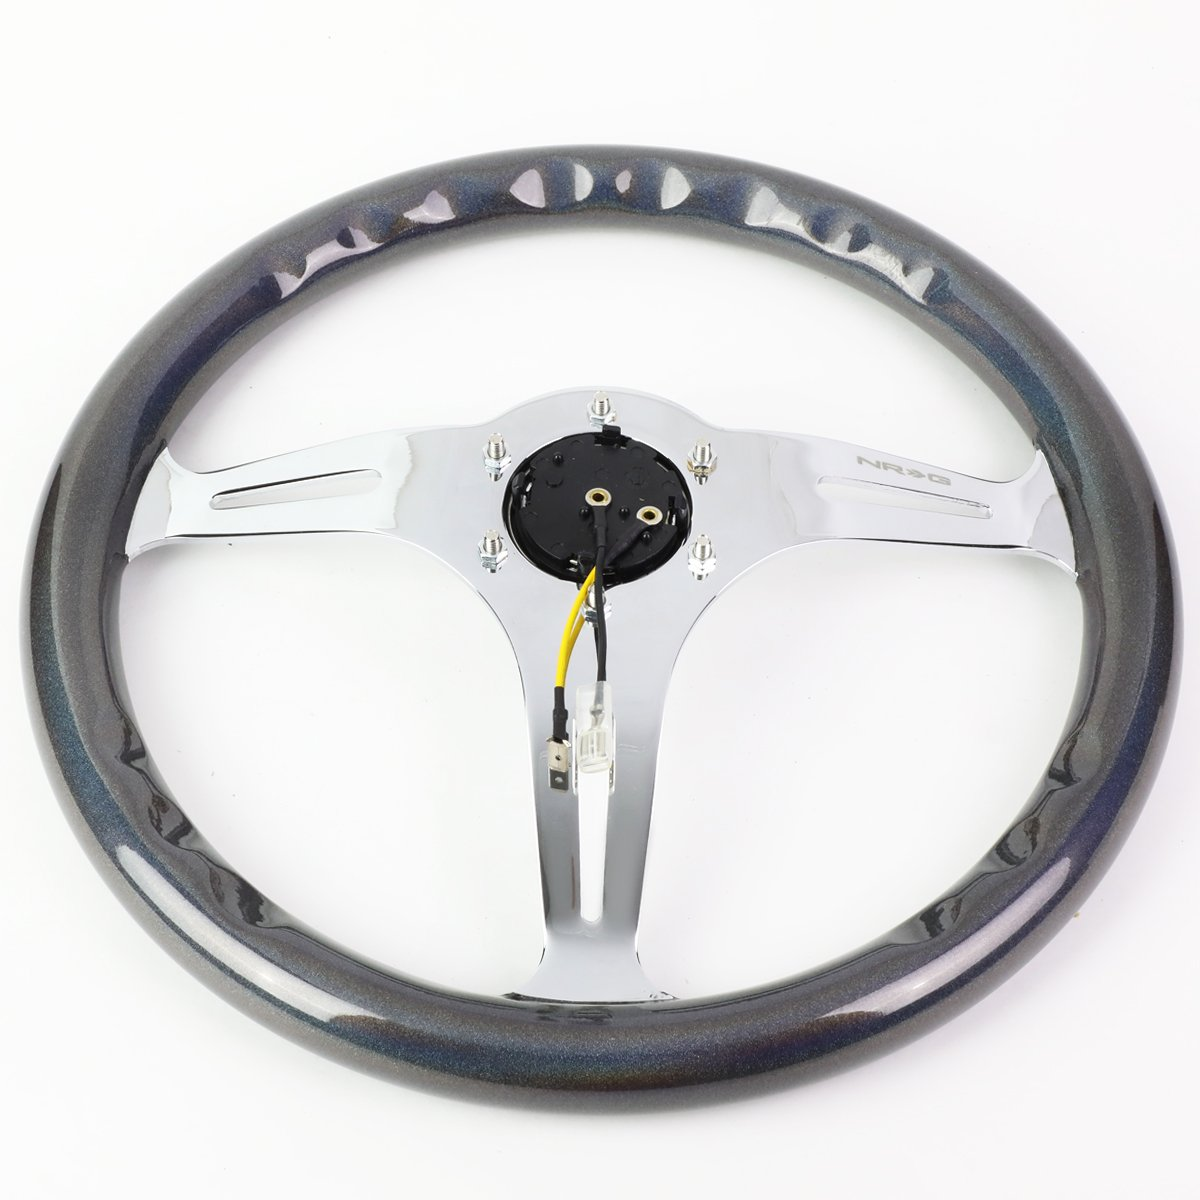 NRG 350mm Chrome /& Chameleon Sparkle 6-Bolt Spoke Aluminum Racing Steering Wheel Horn Button